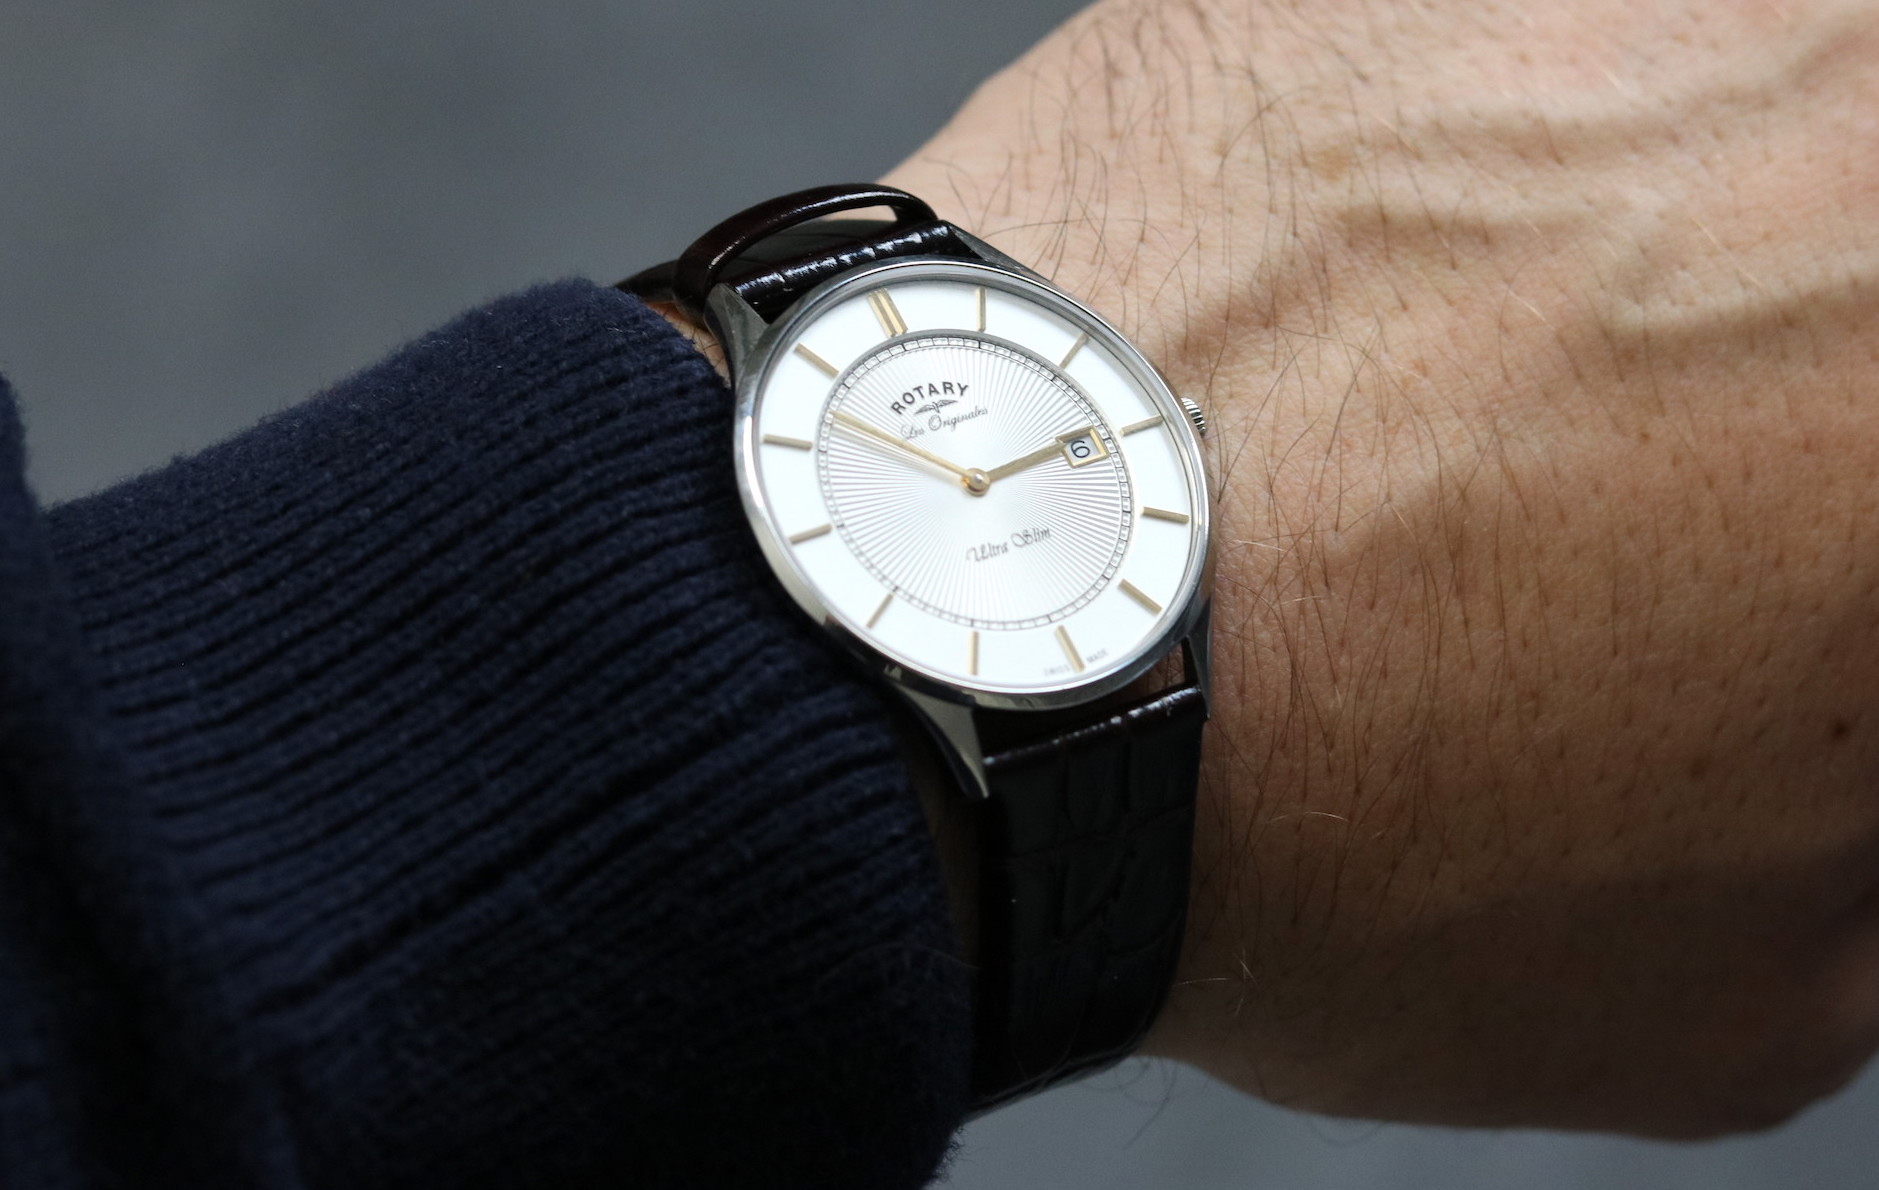 rotary ultra slim men s watch review the mitchelli modern the strap in genuine brown leather is soft enough to be very comfortable but is very thin and combined the small and 36mm case makes the watch look